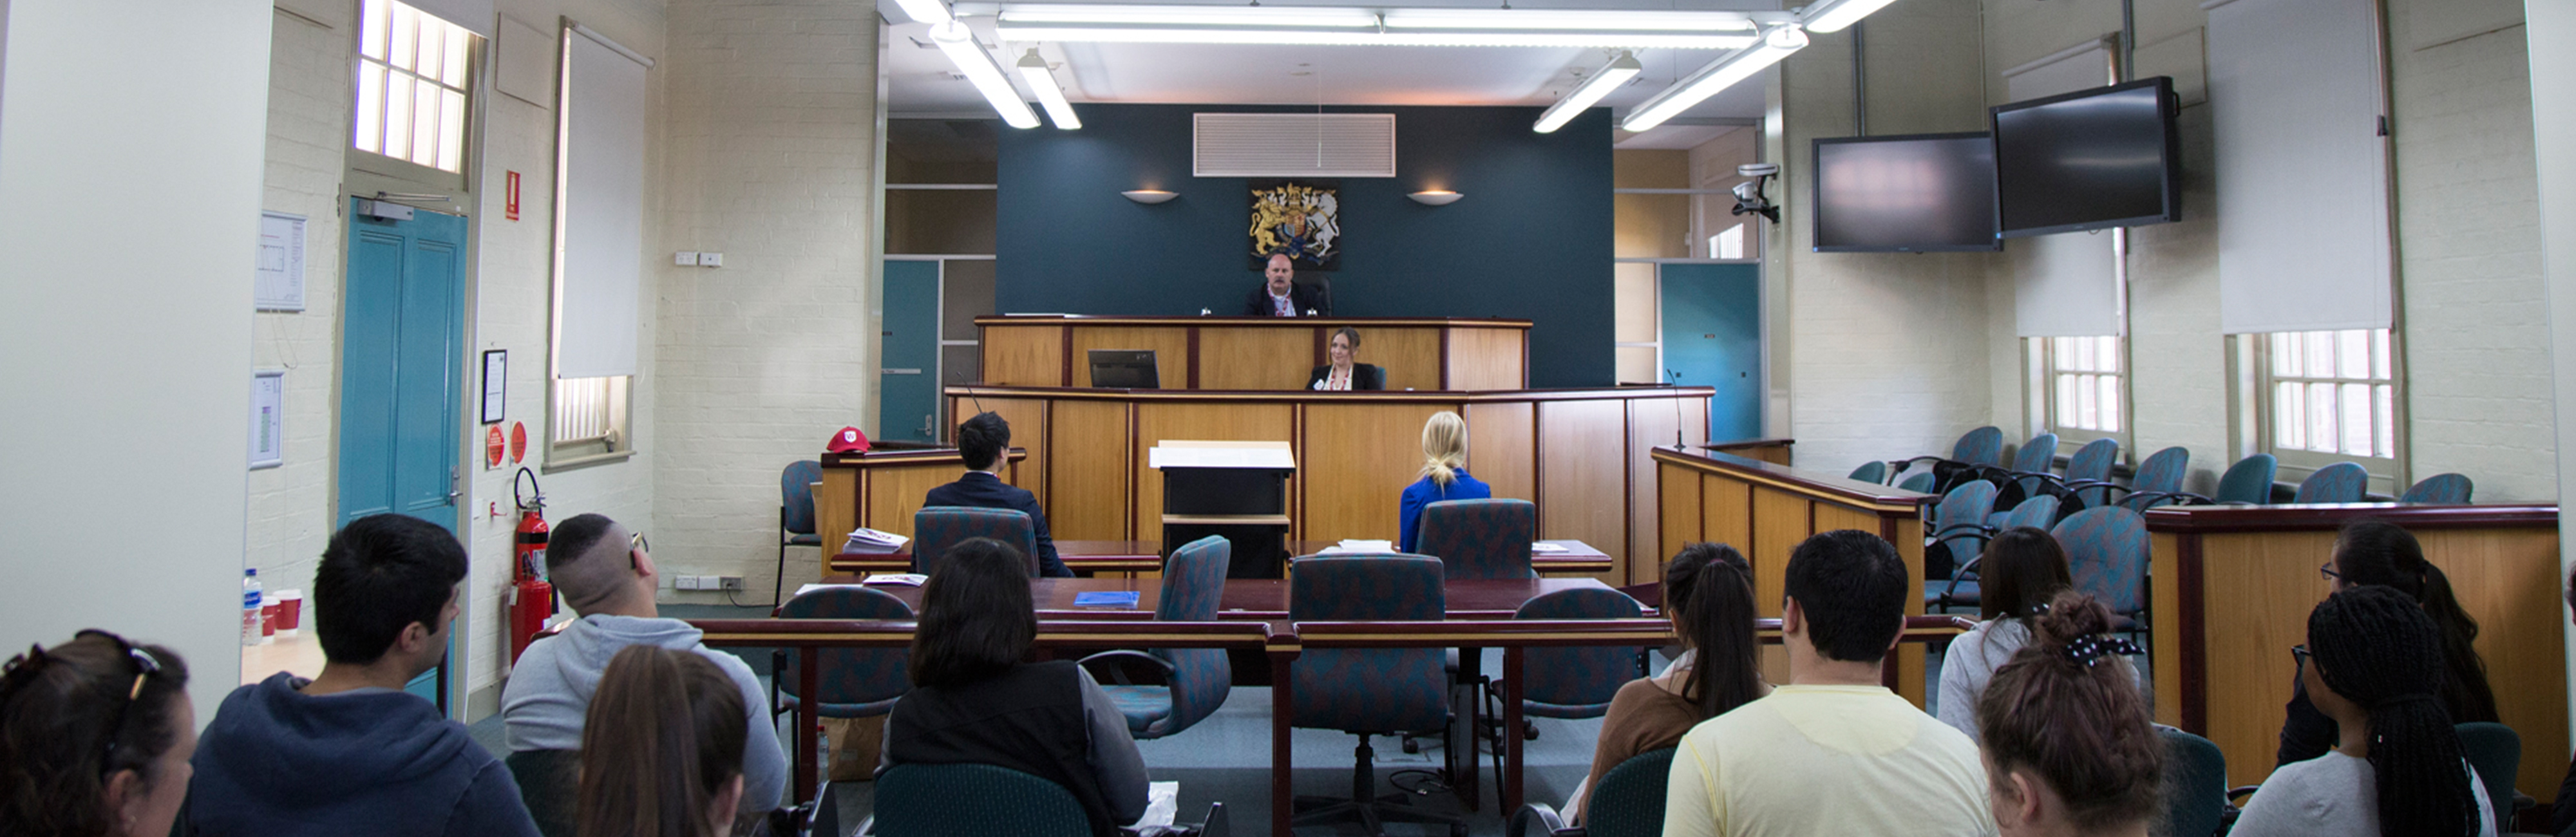 Moot court setting at our Campbelltown and Parramatta campuses